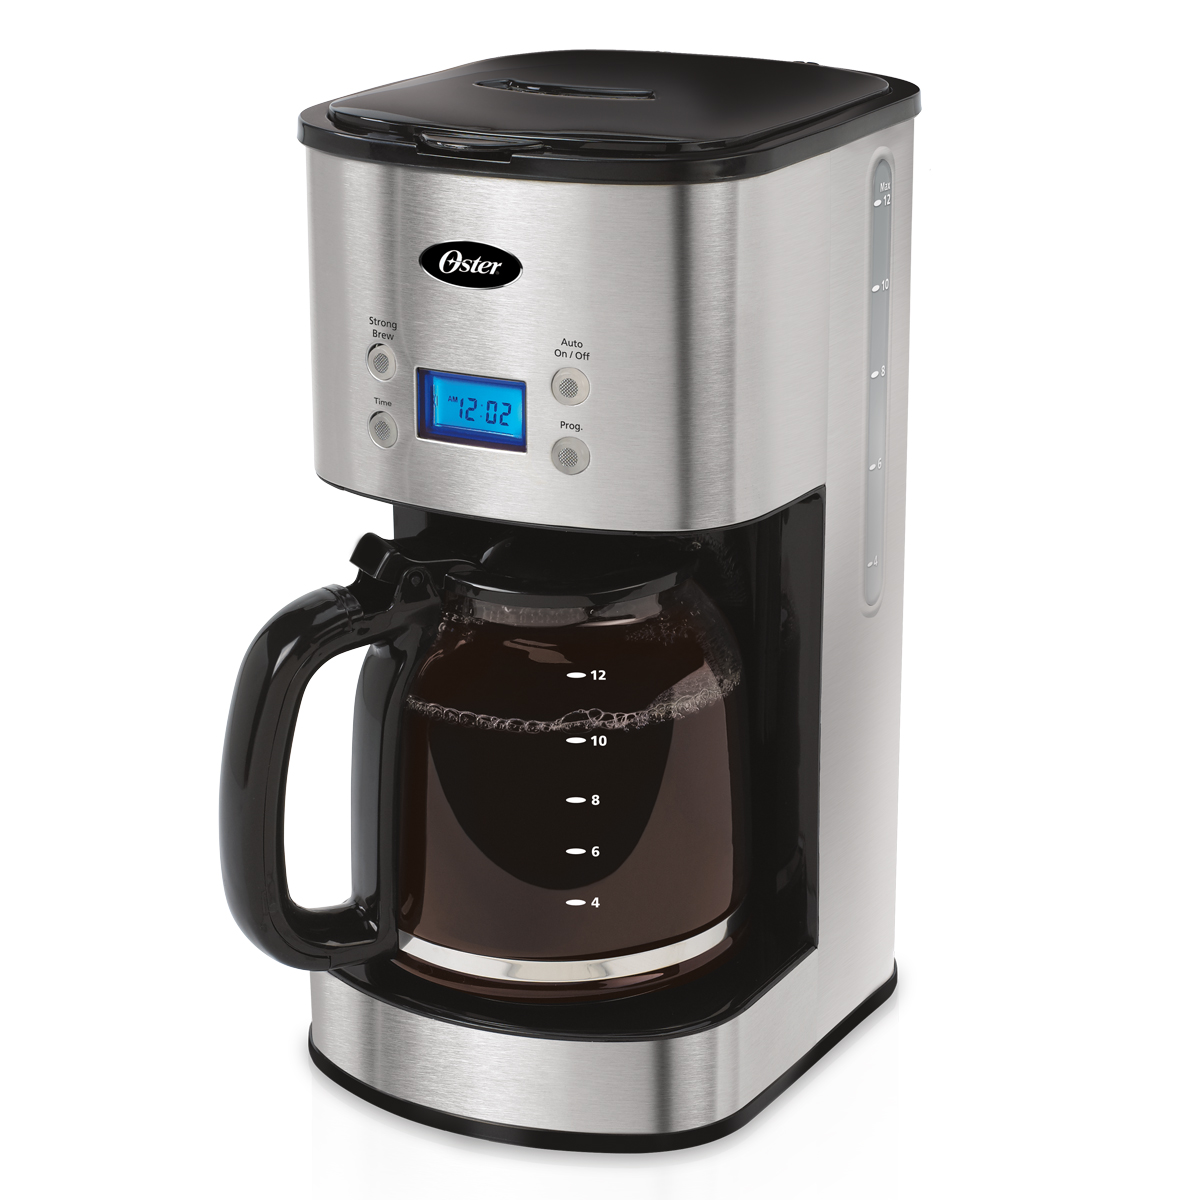 One Cup Coffee Maker Programmable : Oster 12 Cup Programmable Coffee Maker BVST-JBXSS41 eBay